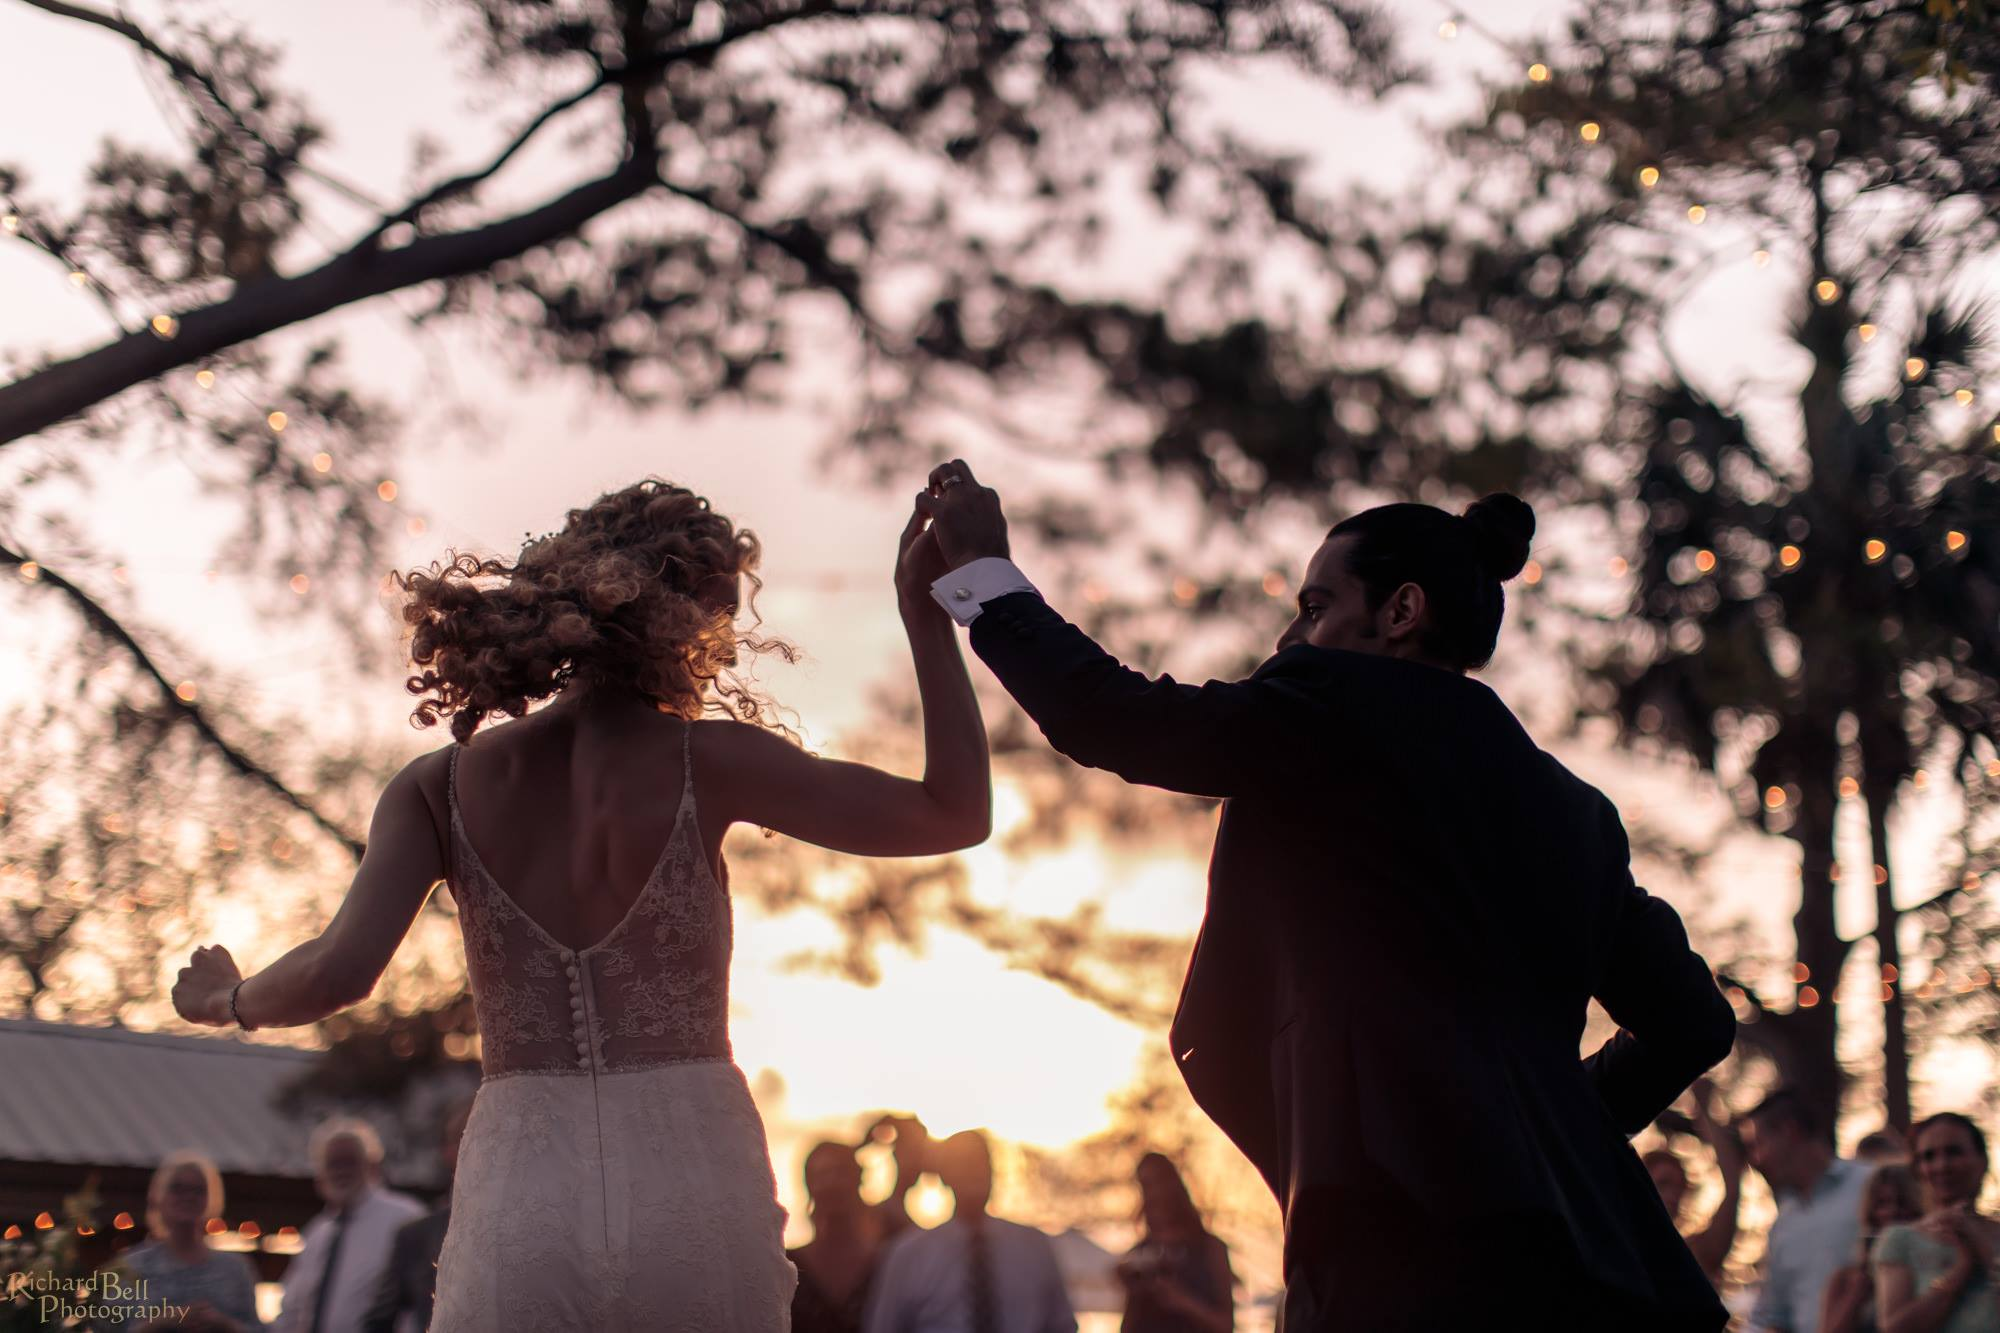 wedding dance lessons - Make your First Dance the start of something wonderful!